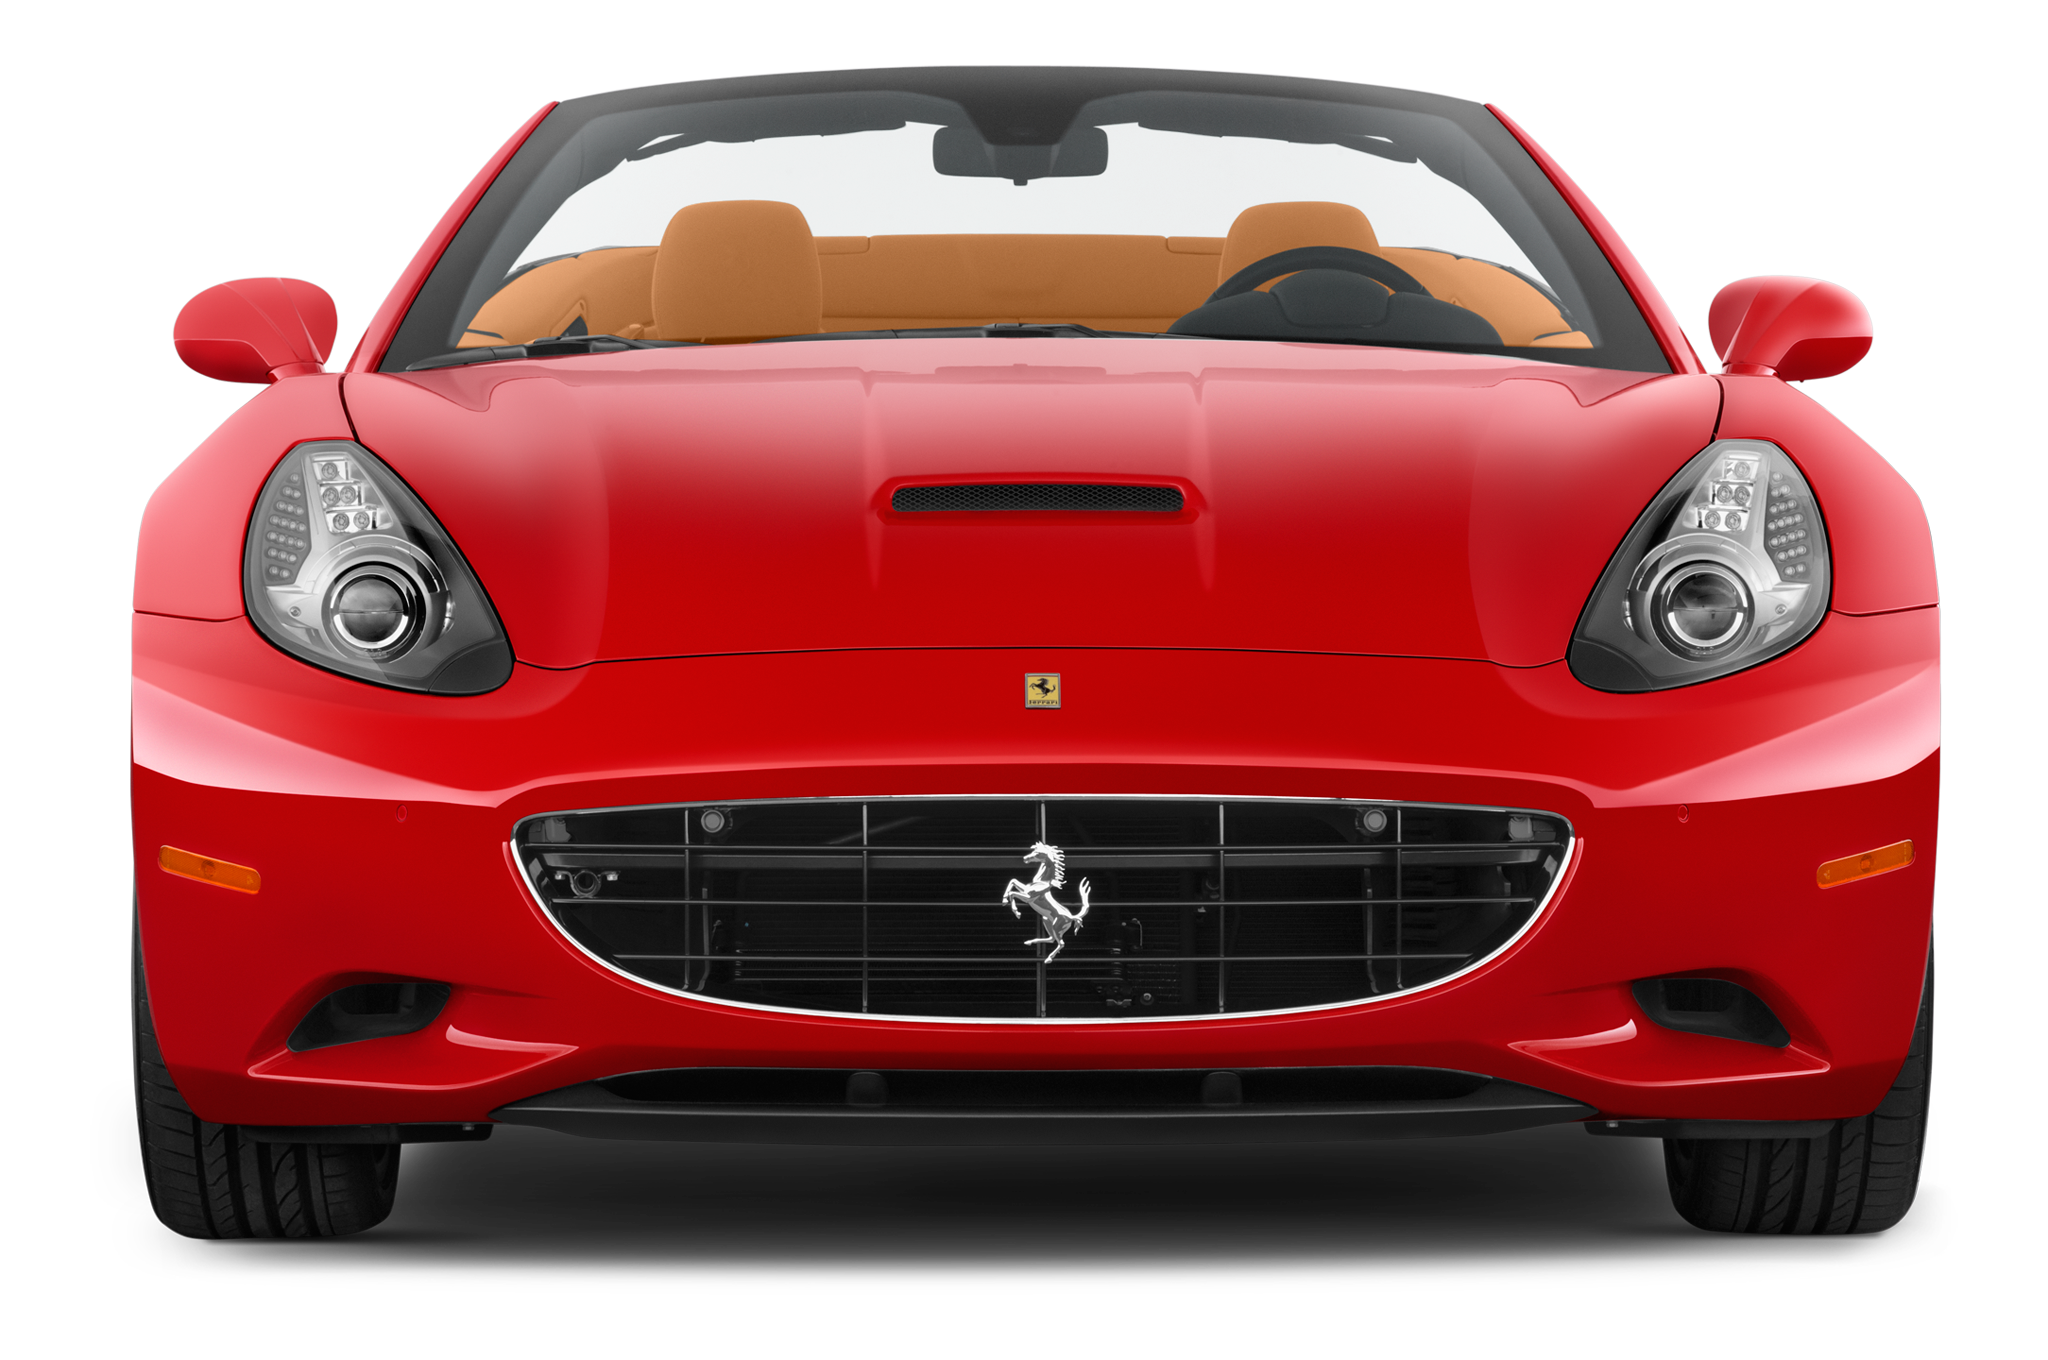 Exotic car clipart image transparent Top 10 Cars With Highest Insurance Claims image transparent